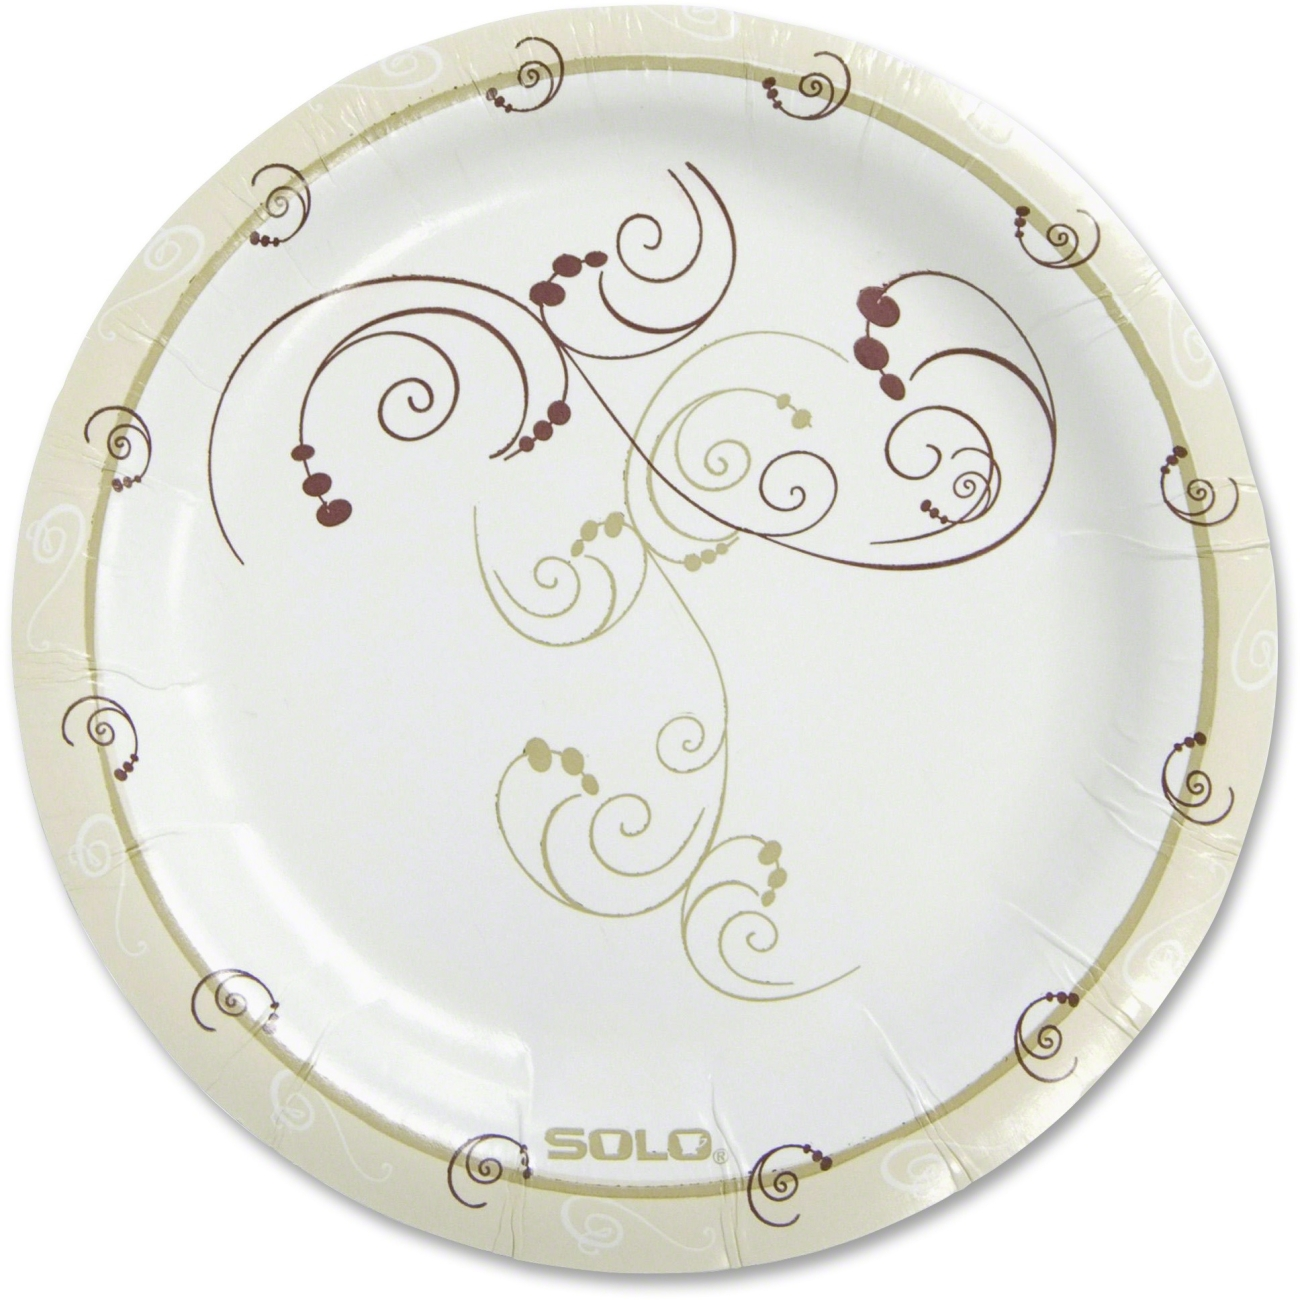 solo paper plates Packs of disposable plastic and paper cups and plates from the solo any day and heavy-duty series are on sale see coupon grocery coupon  $060 off any day 22-50ct paper cup, plate or bowl.